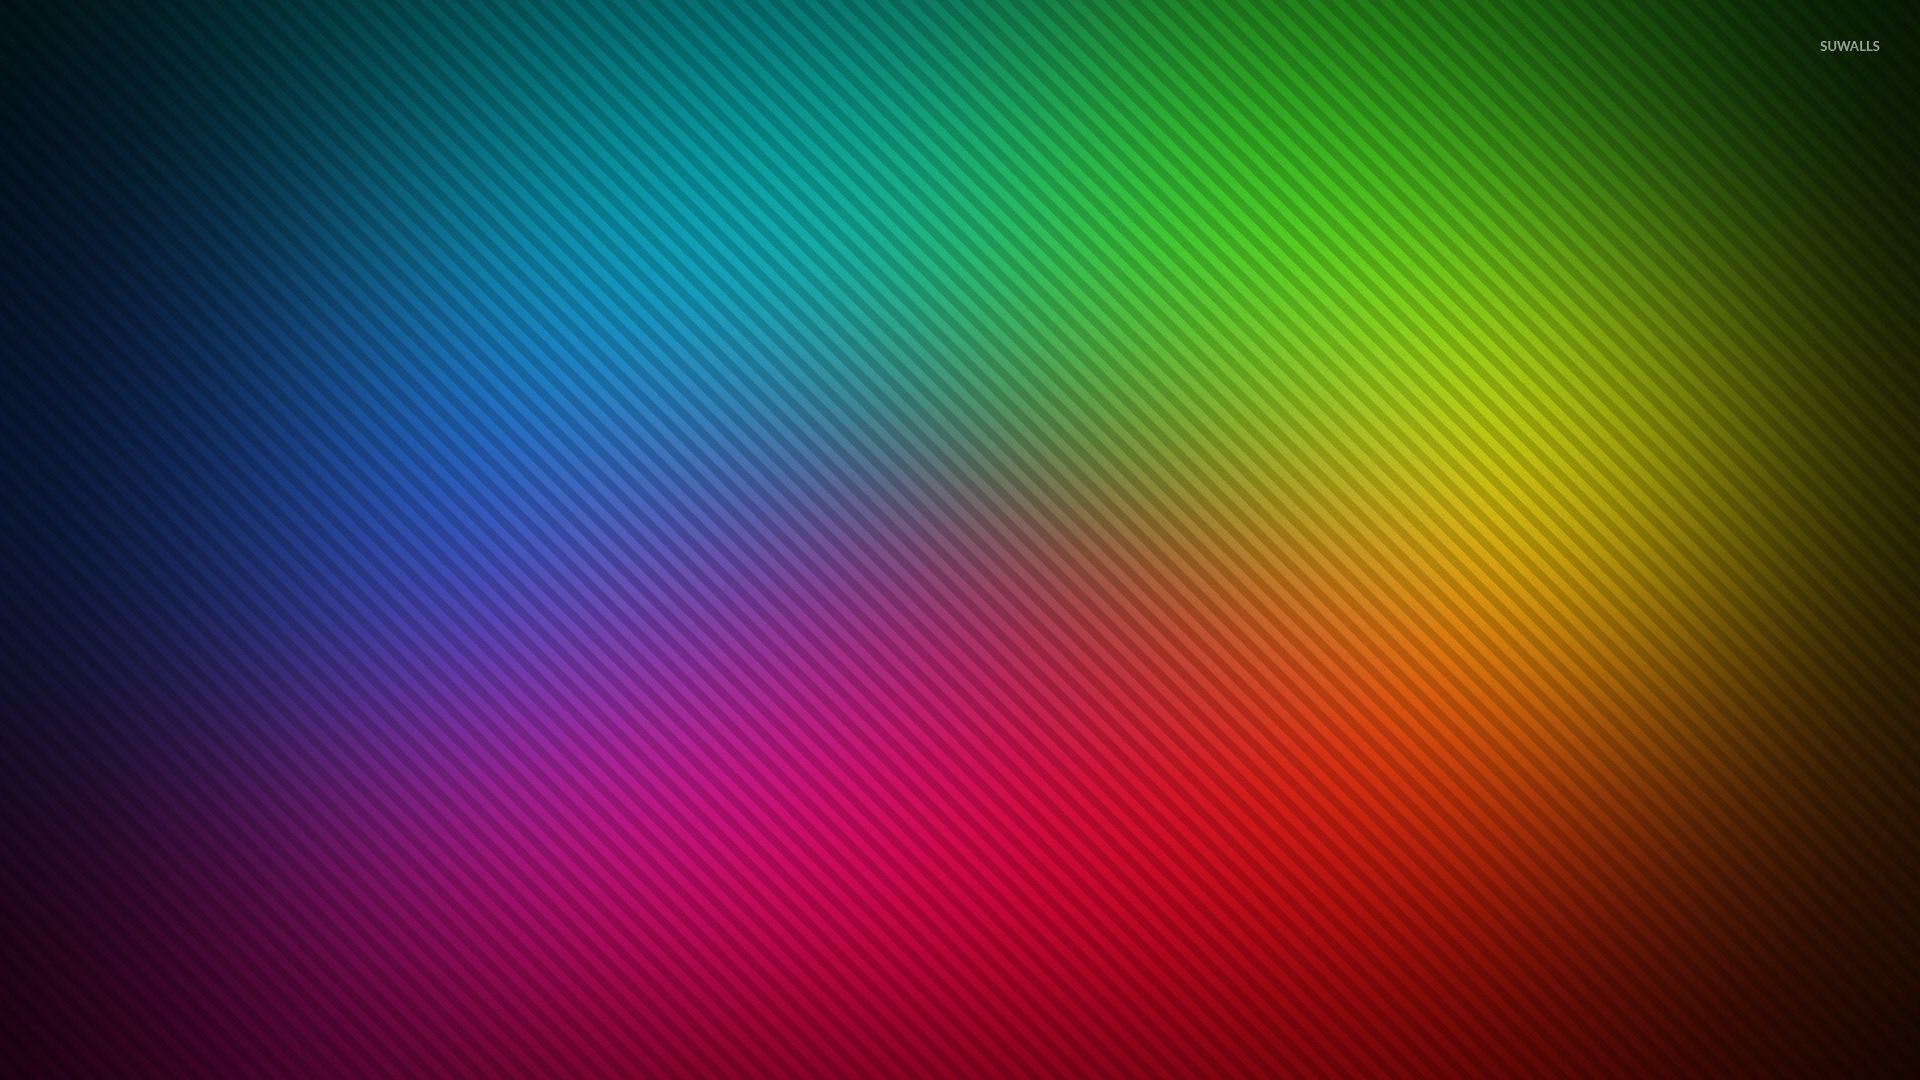 Colorful Blur Wallpaper  Collection 11 Wallpapers